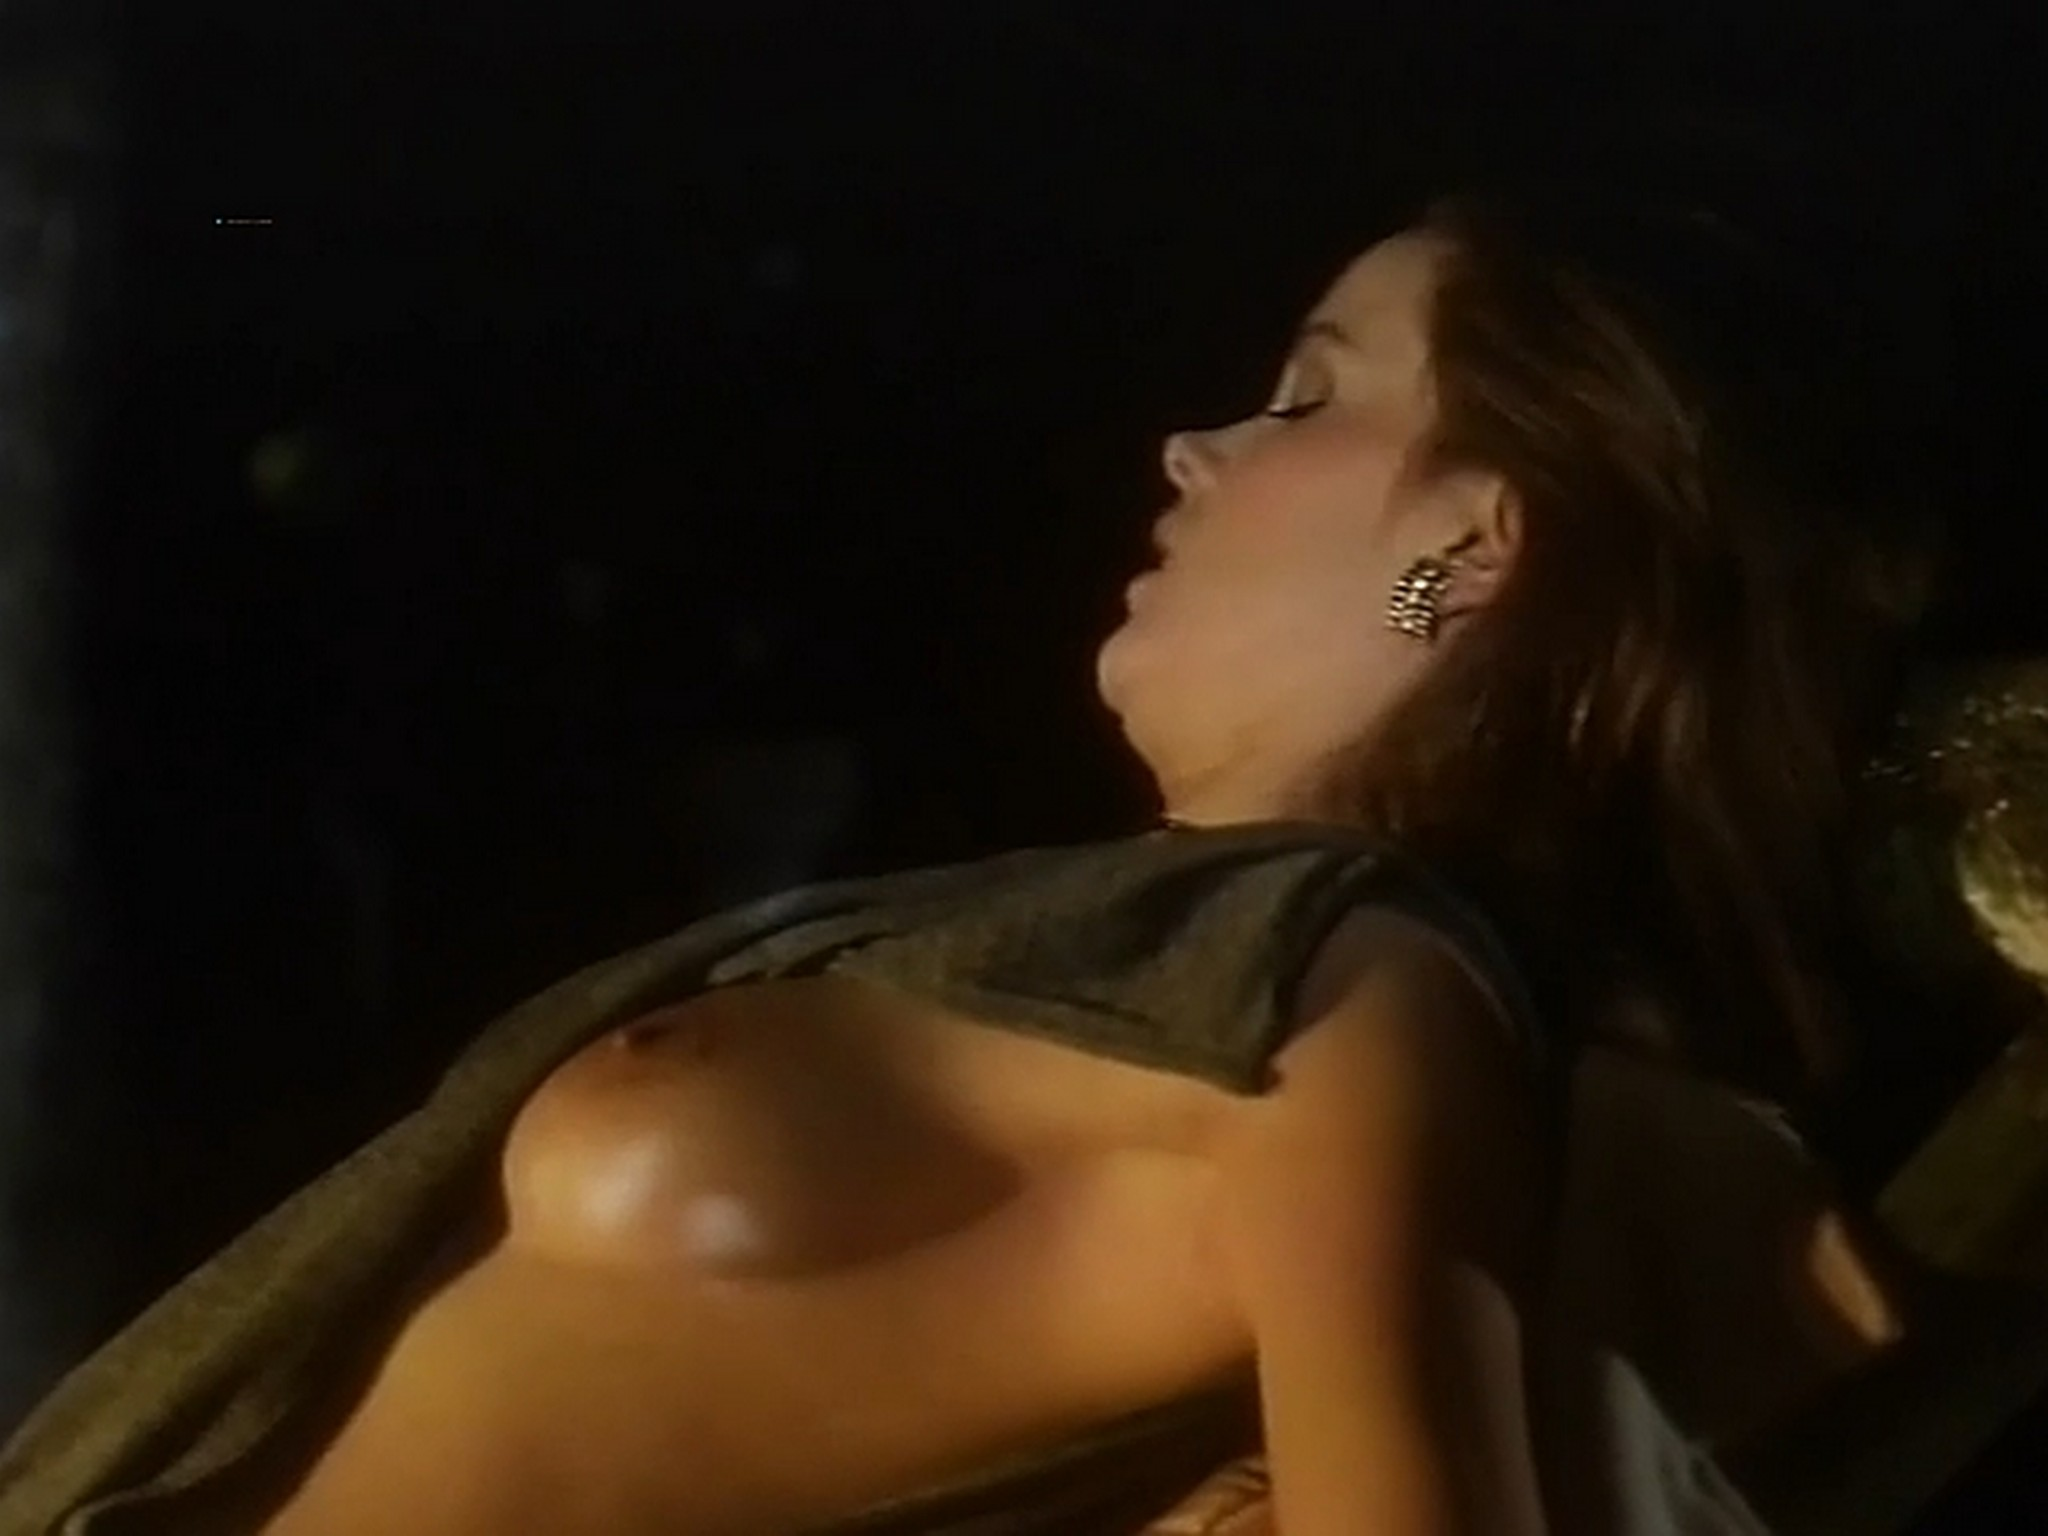 Lydie Denier nude sex Eva Czemerys and others nude too Flesh and Fire 1985 DVDRip 6